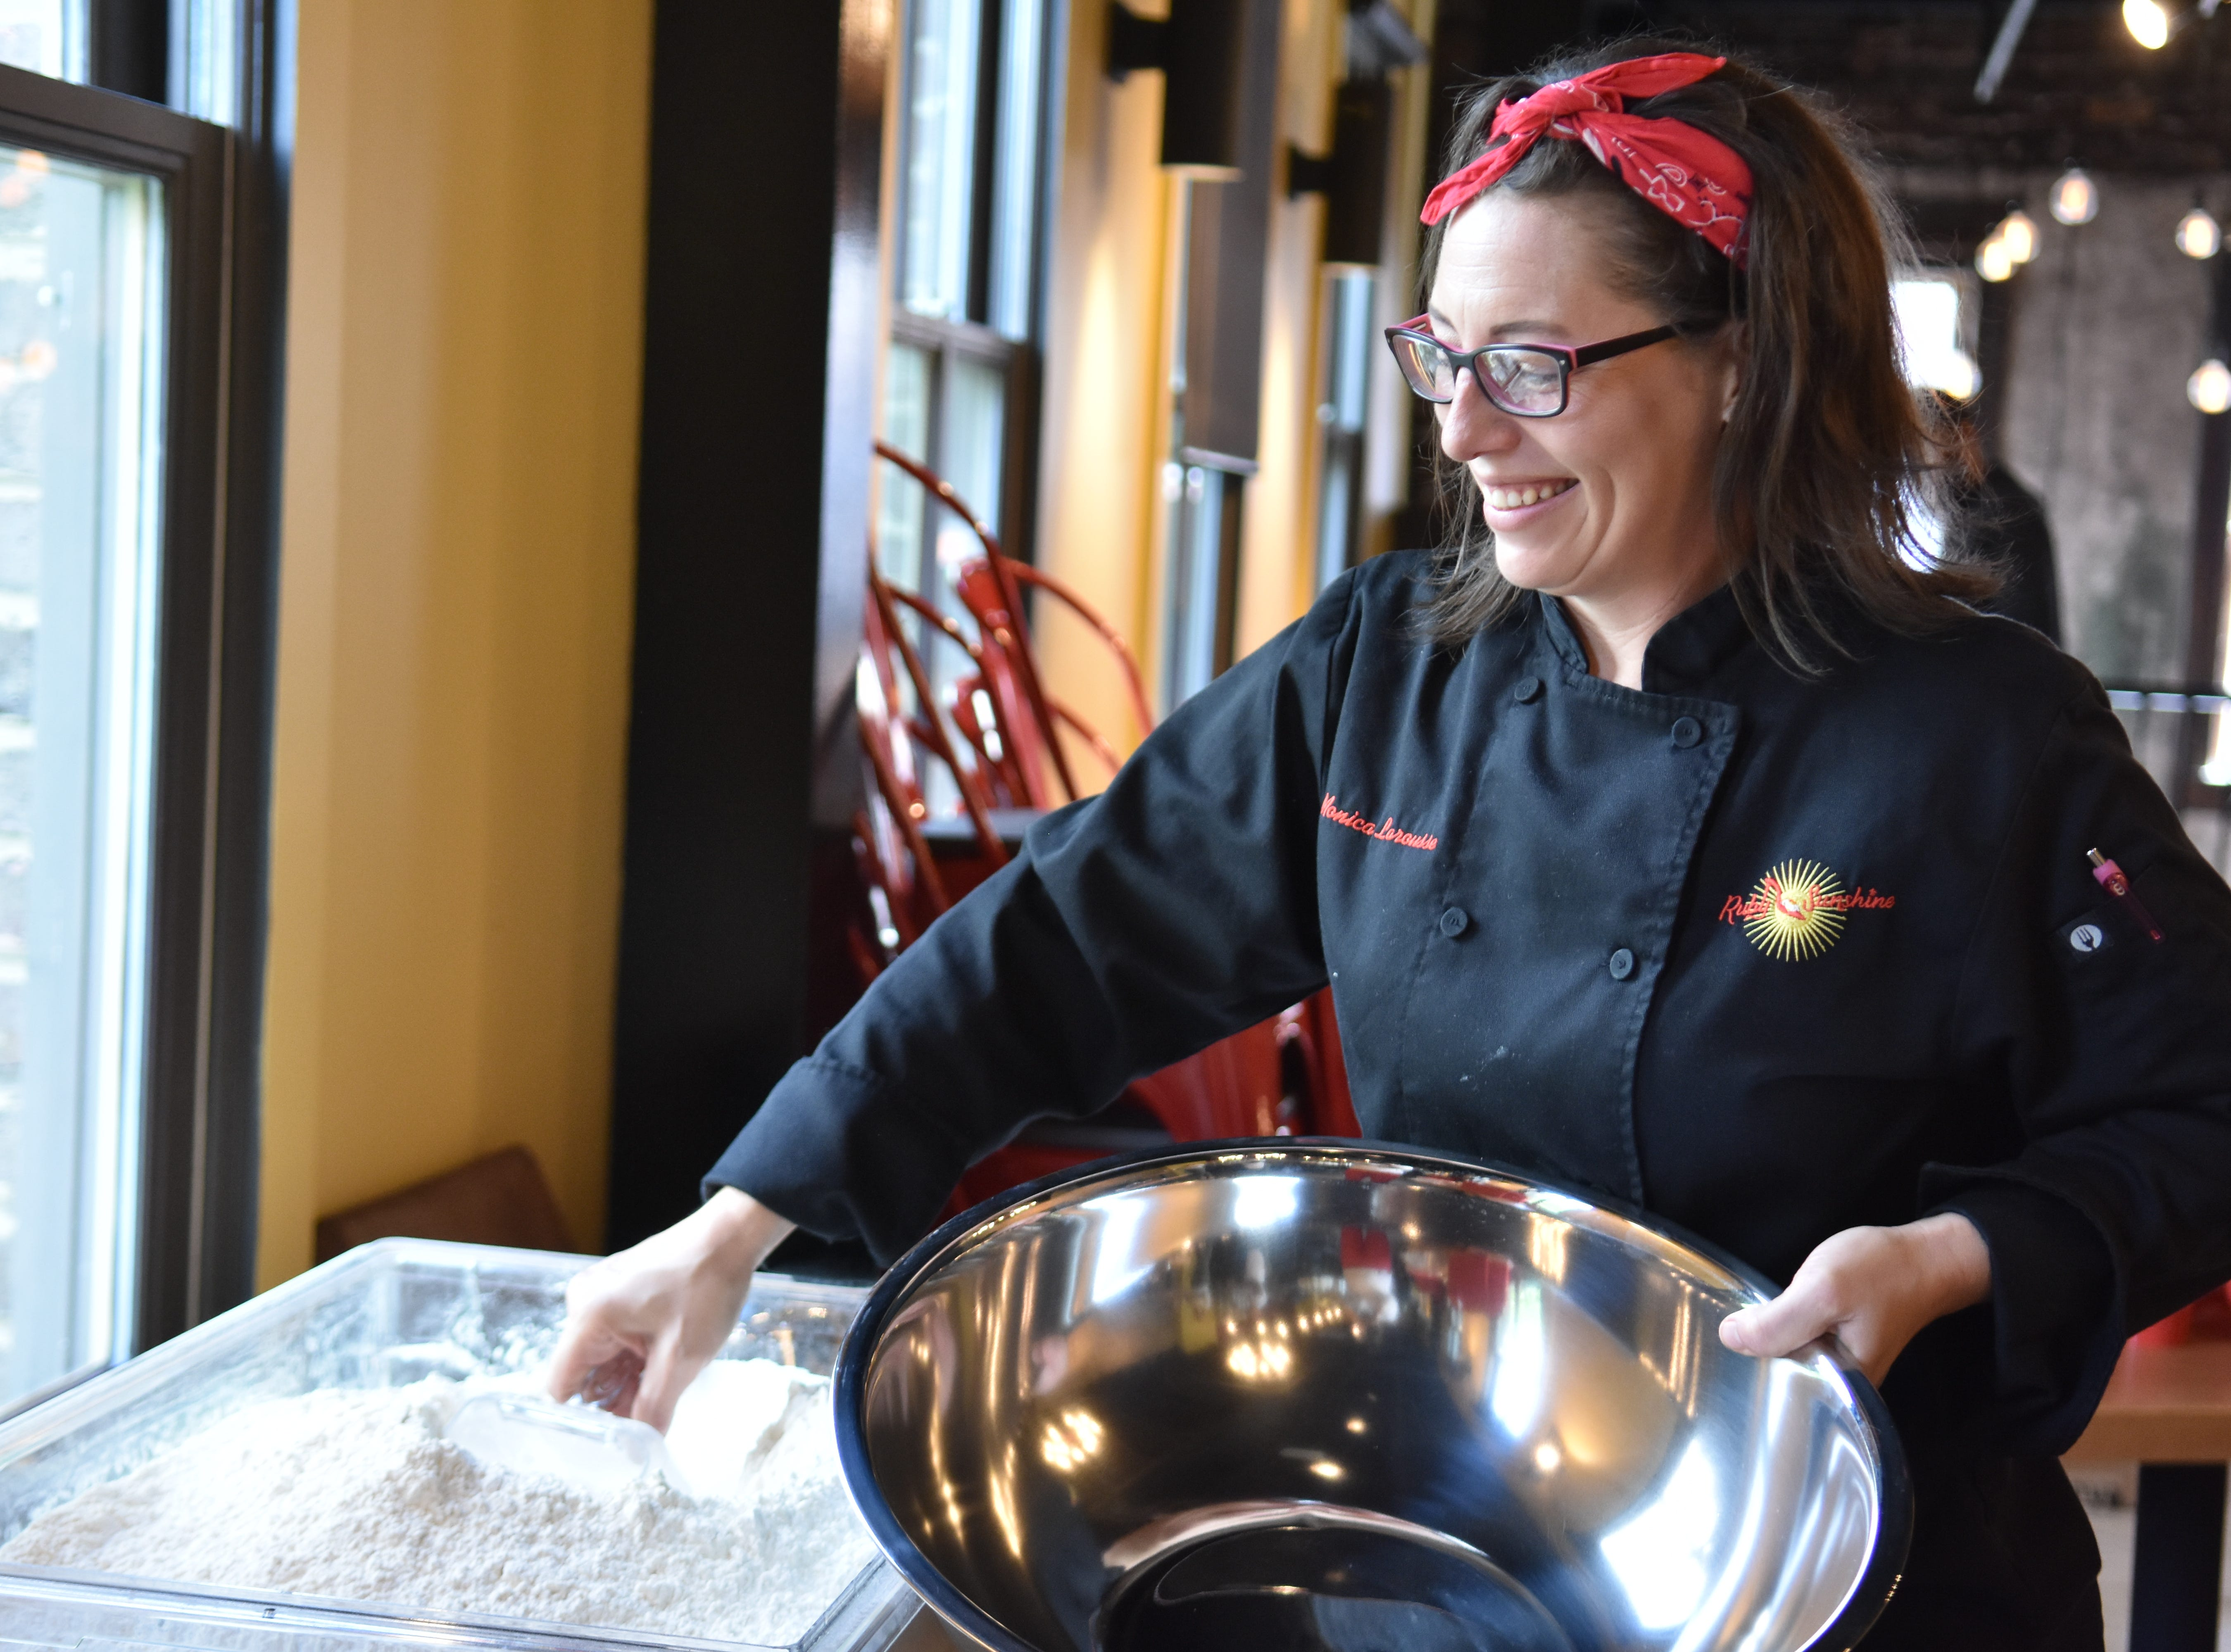 Chef Monica Larousse scoops flour in preparation for a biscuit making class at Ruby Sunshine in Market Square.